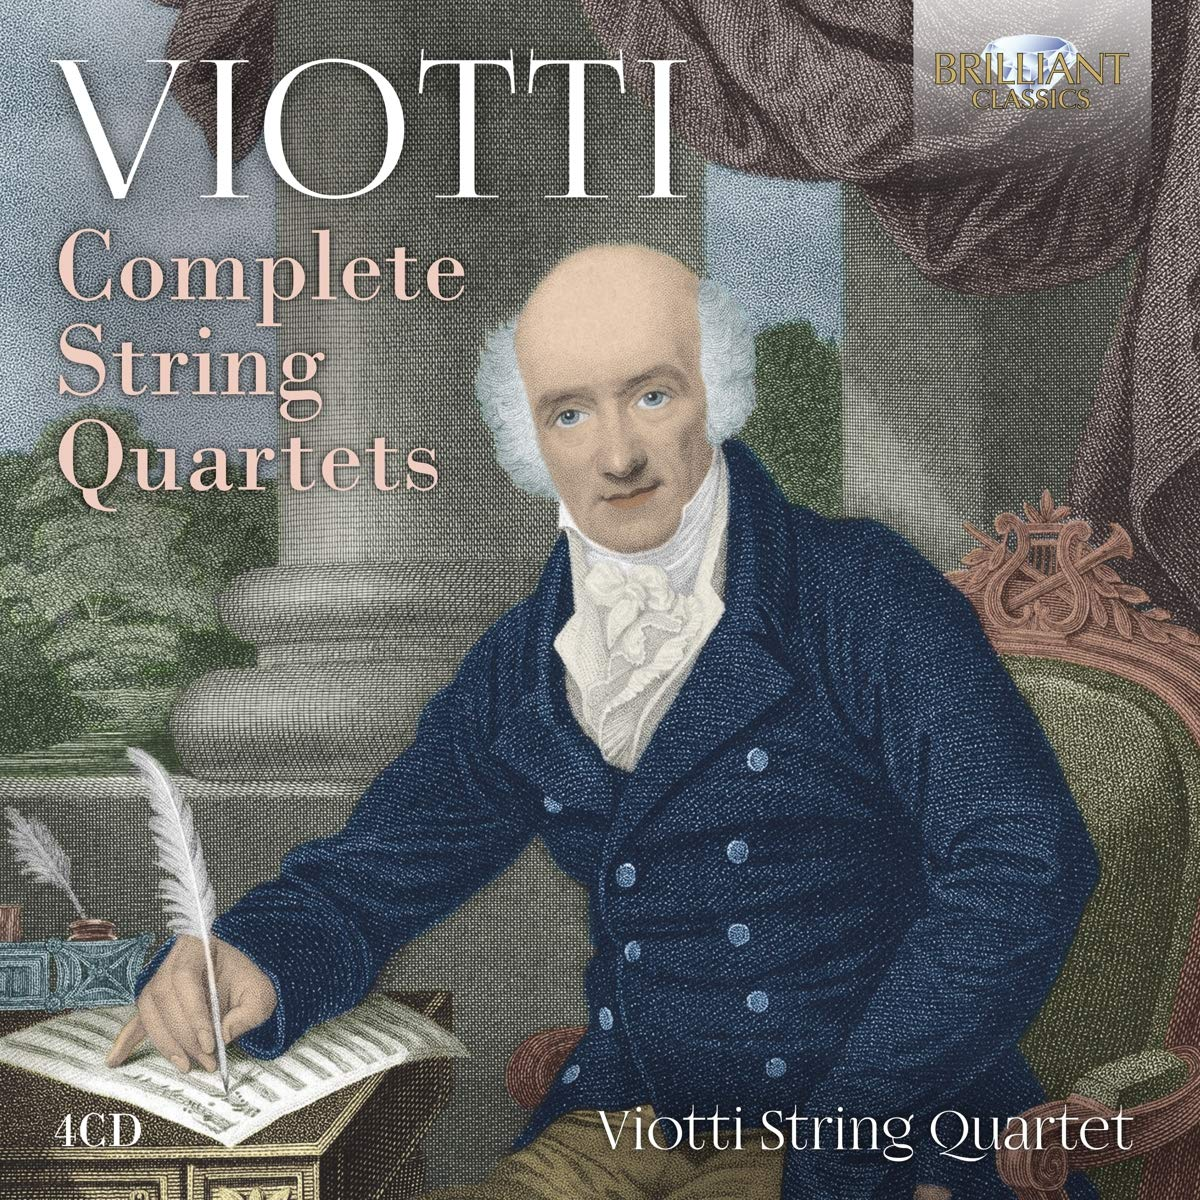 VIOTTI STRING QUARTET - Complete String Quartets - Amazon.com Music